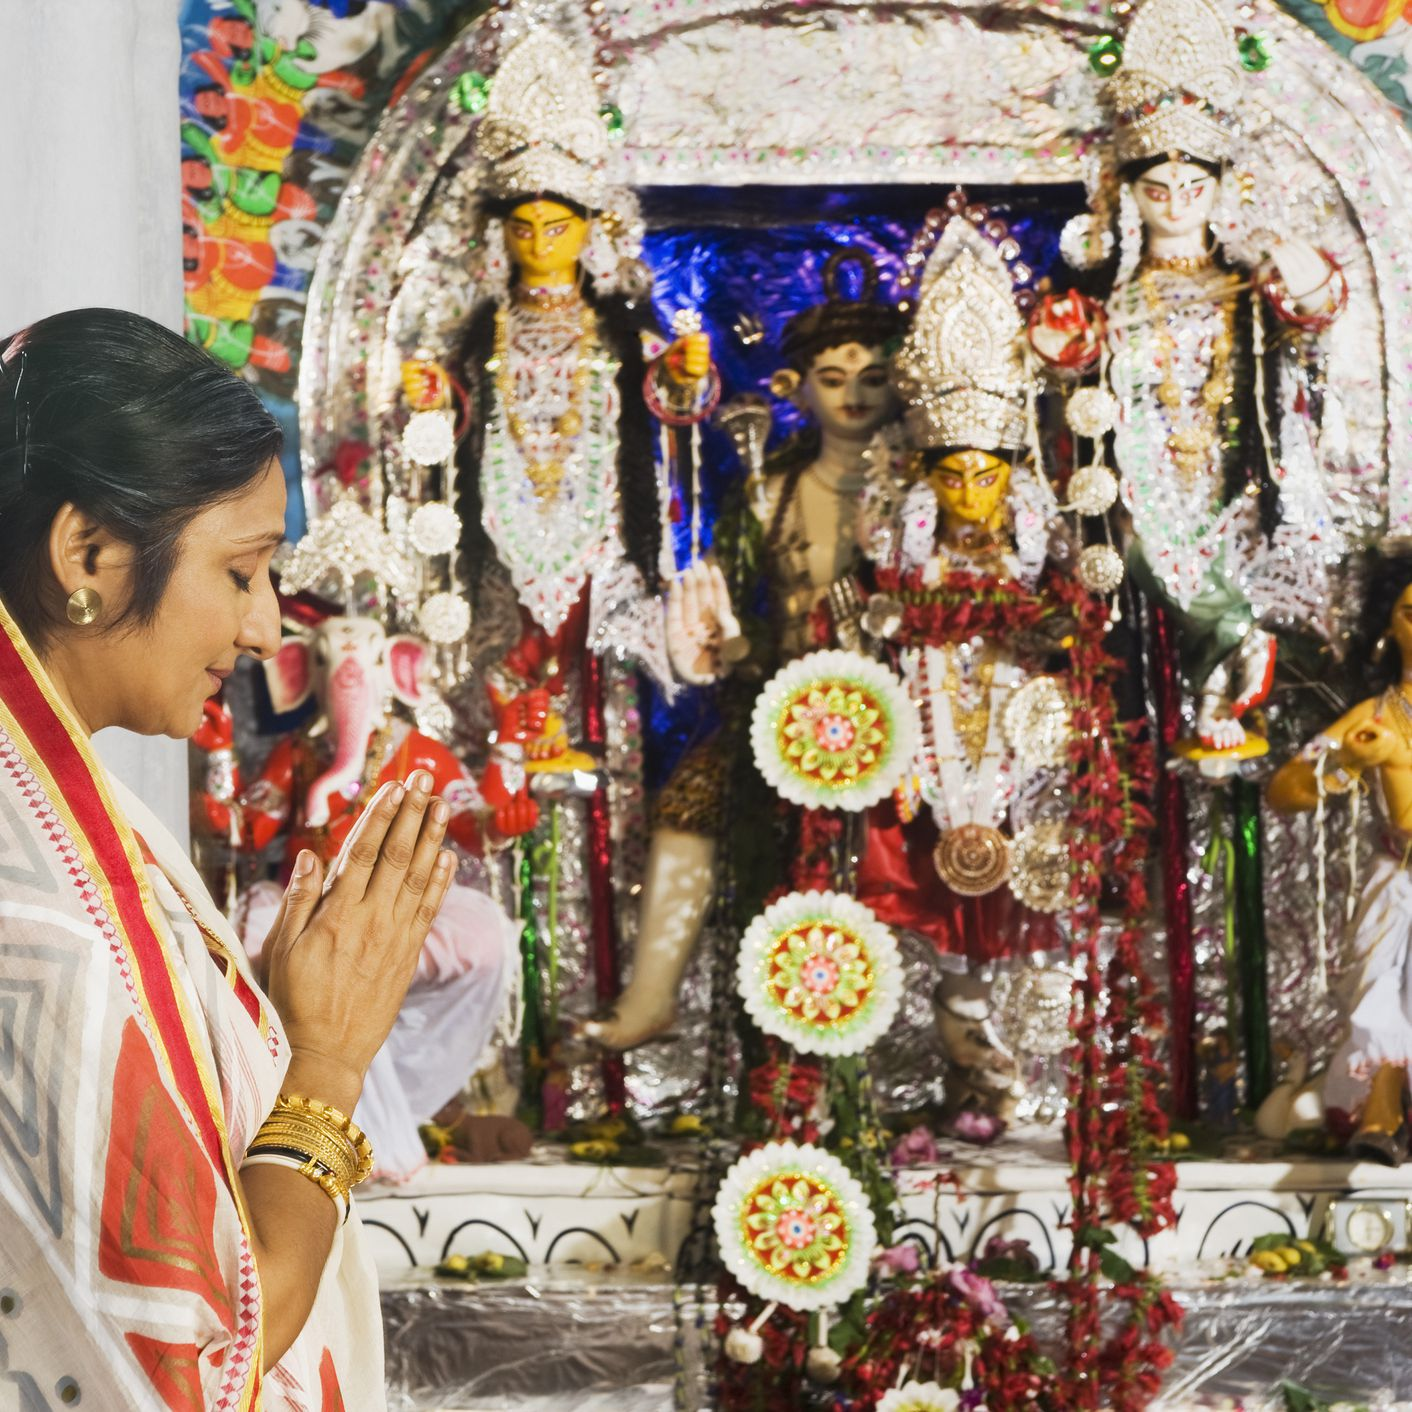 When is Navaratri in 2019, 2020 and 2021?